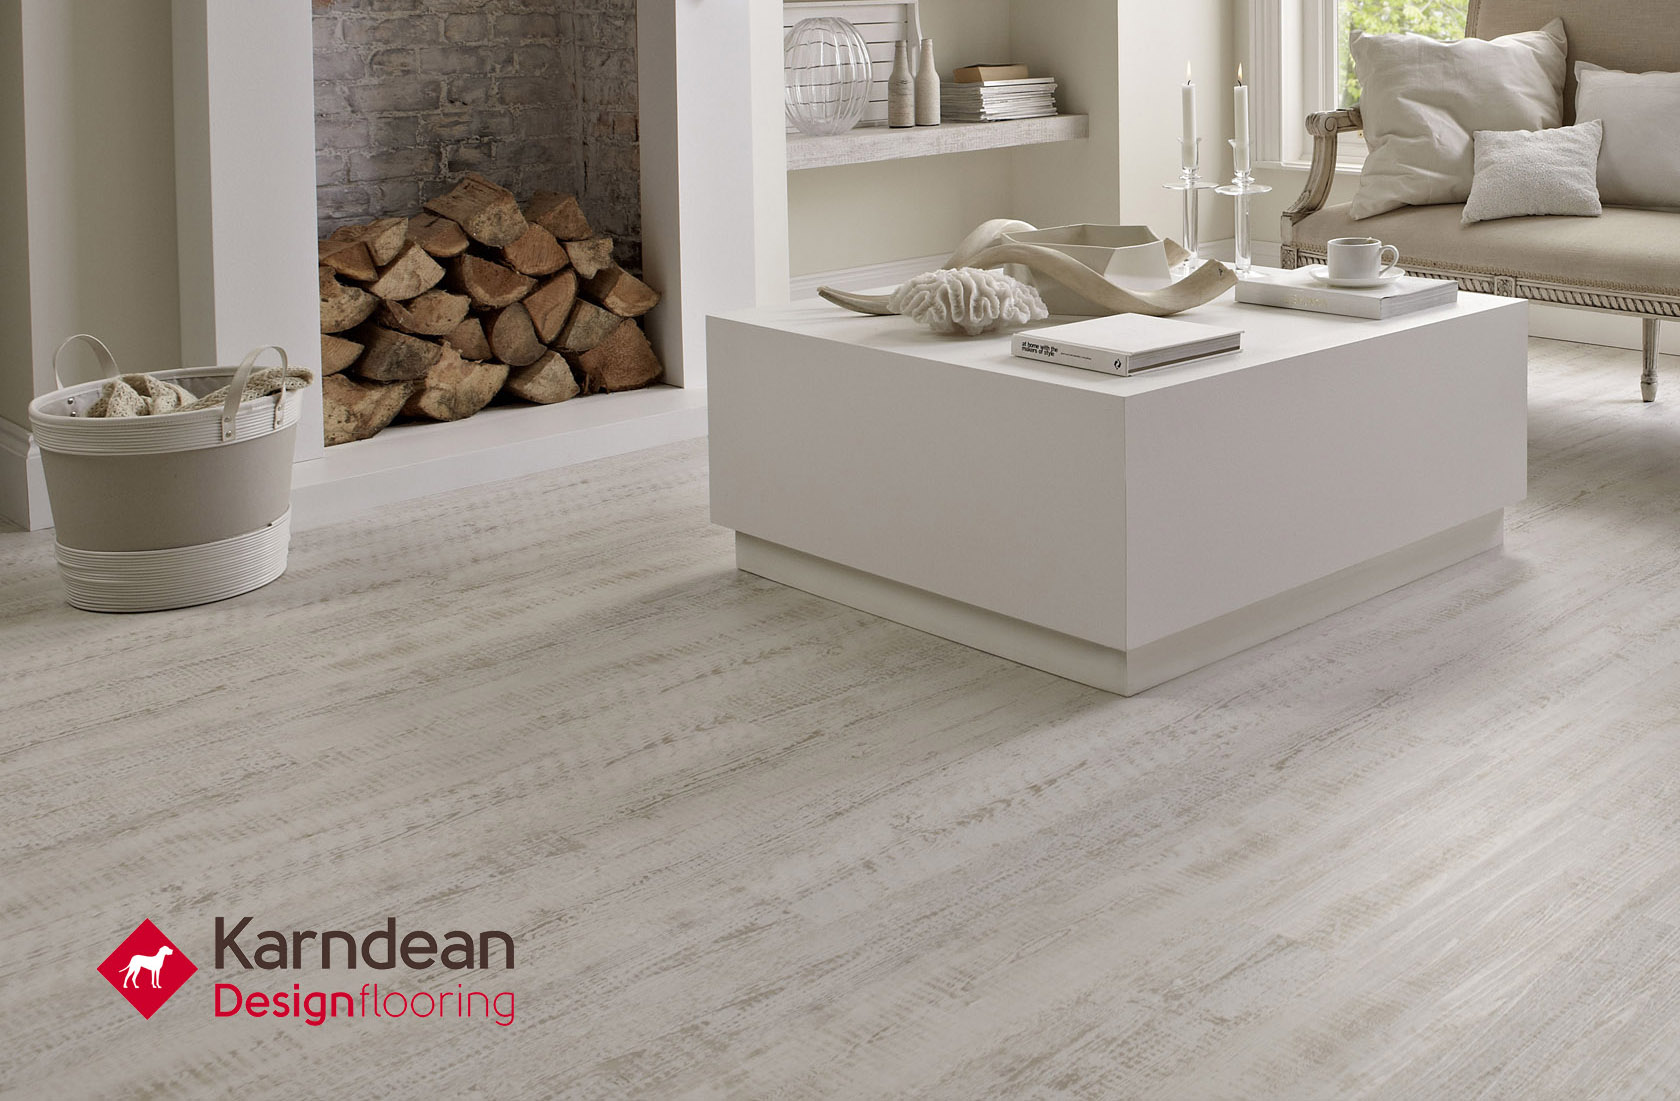 Karndean flooring is ideal in any room of the home